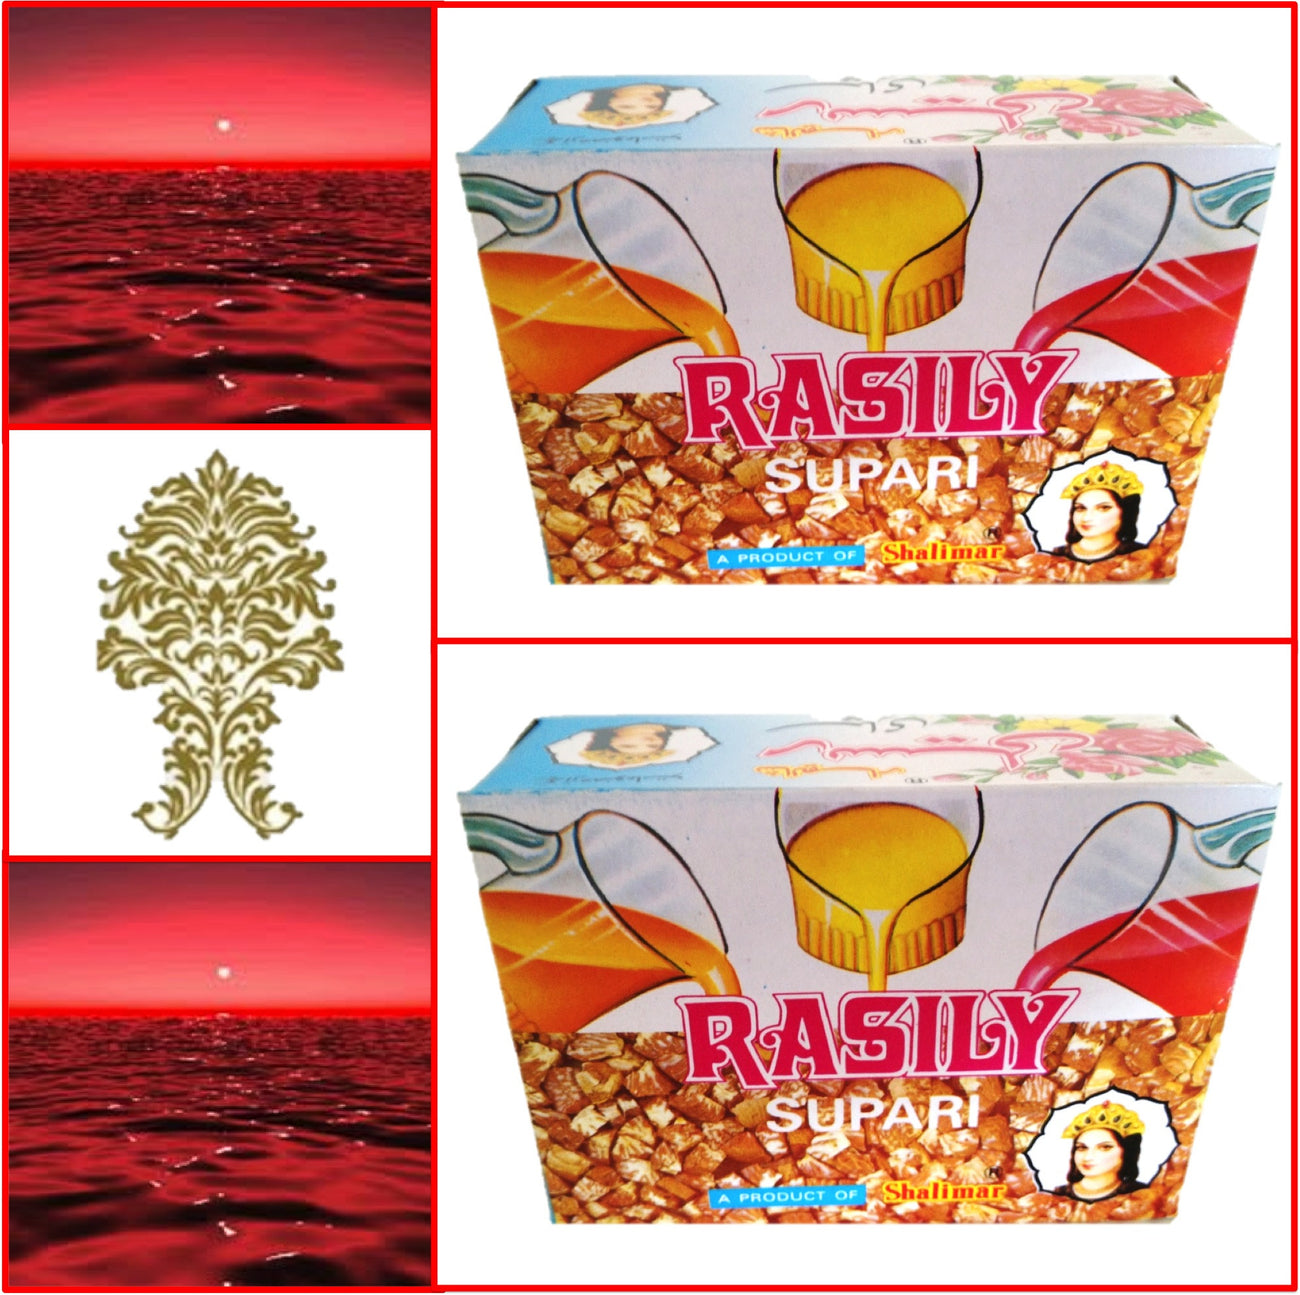 2 Packs. Shalimar Rasily Supari Pack. 48 pouches 96g. Export Quality!!